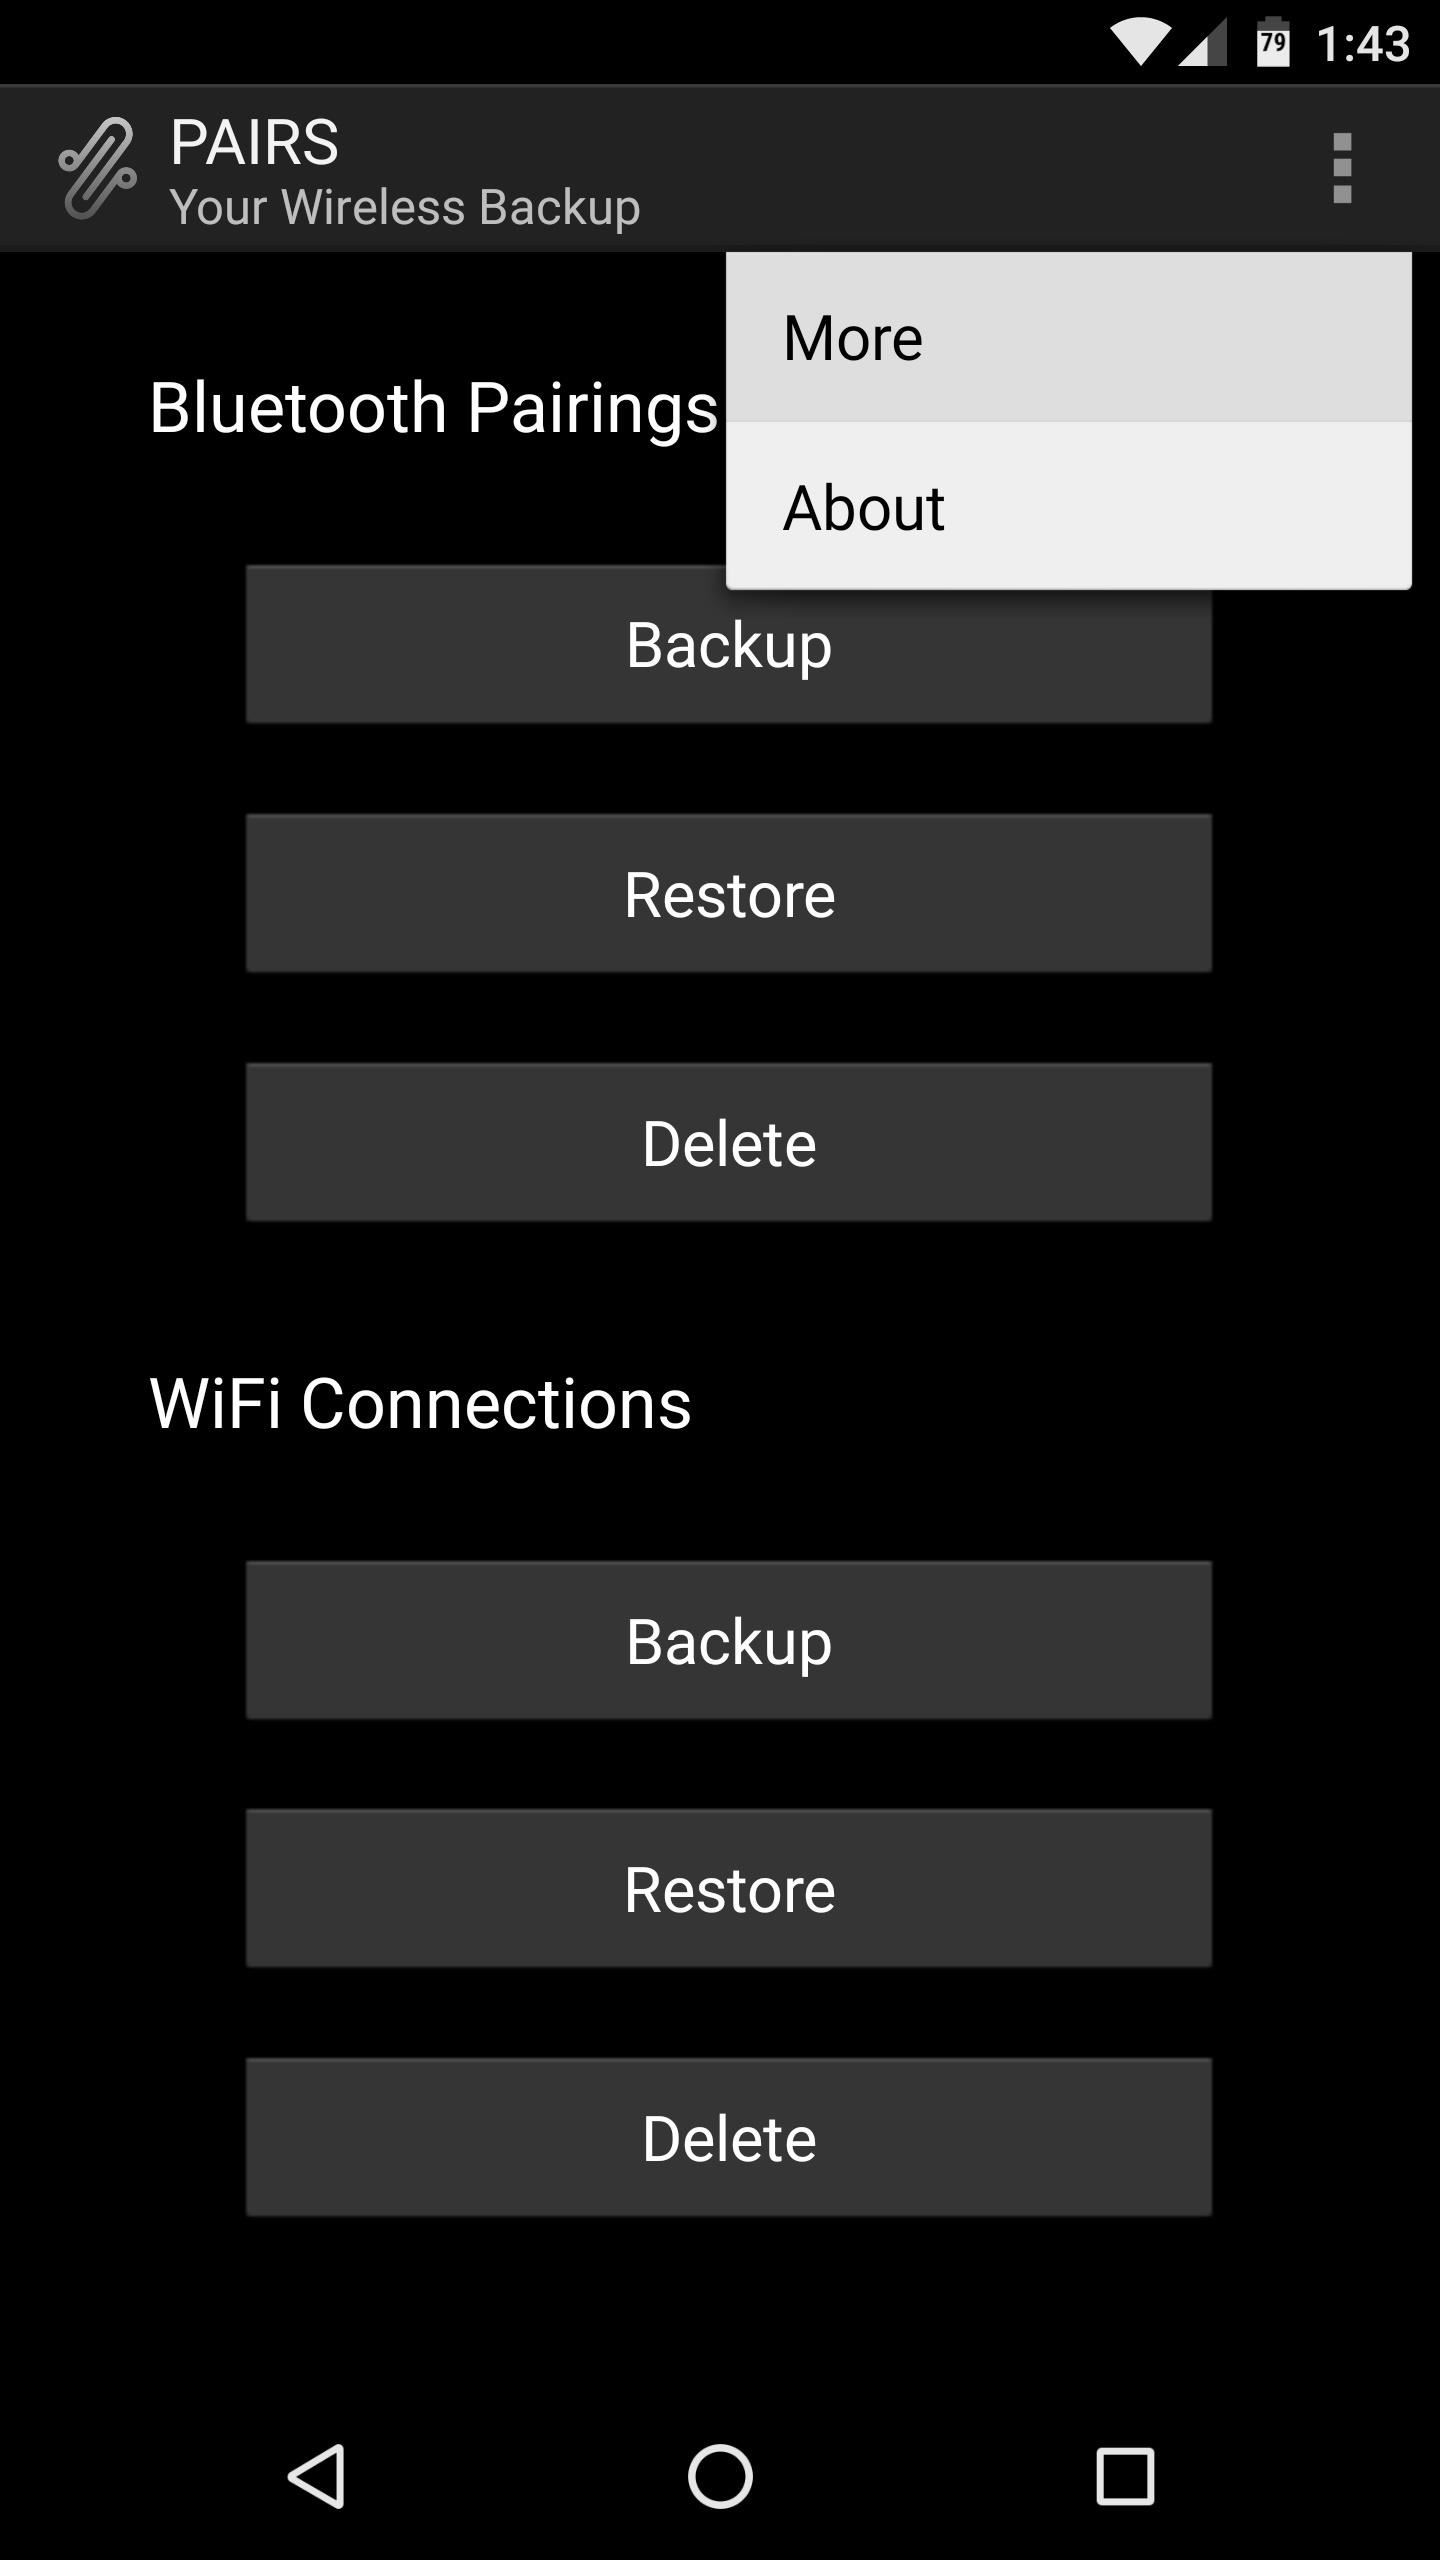 PAIRS Is the Easy Way to Restore Wi-Fi & Bluetooth Connections After Wiping Your Phone